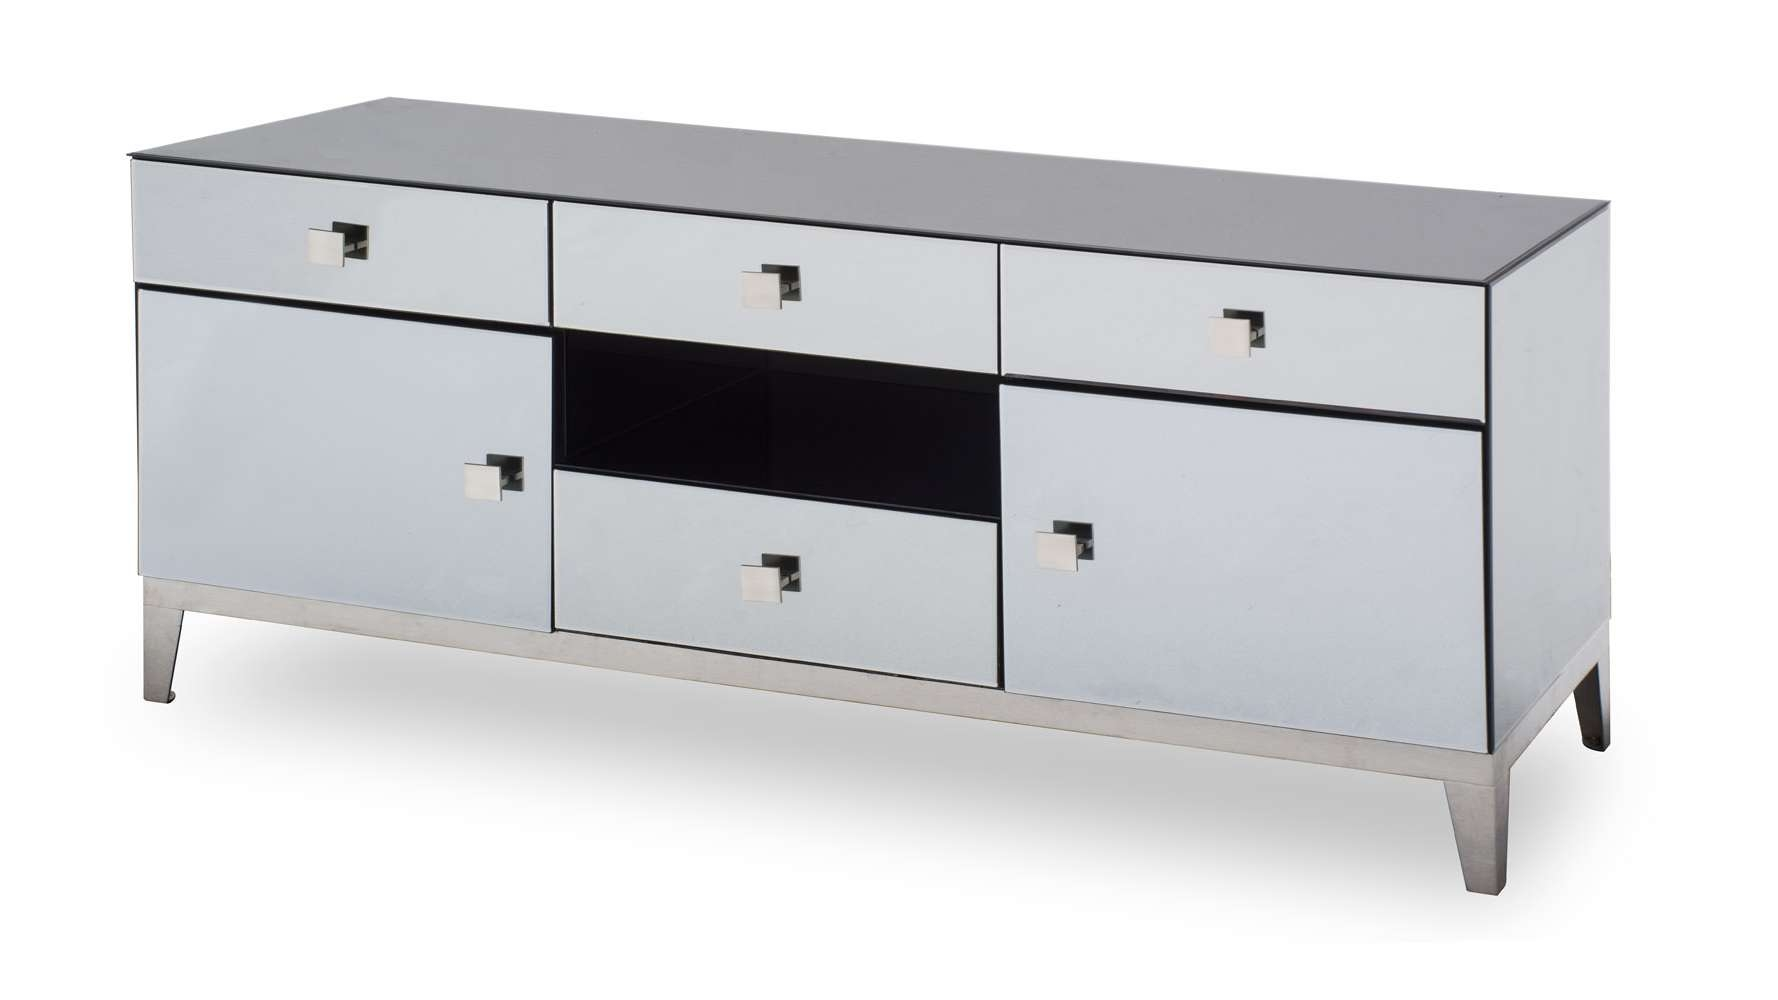 Modern Grey Mirrored Glass Berlin Tv Stand | Zuri Furniture With Regard To Mirrored Tv Cabinets Furniture (View 12 of 20)